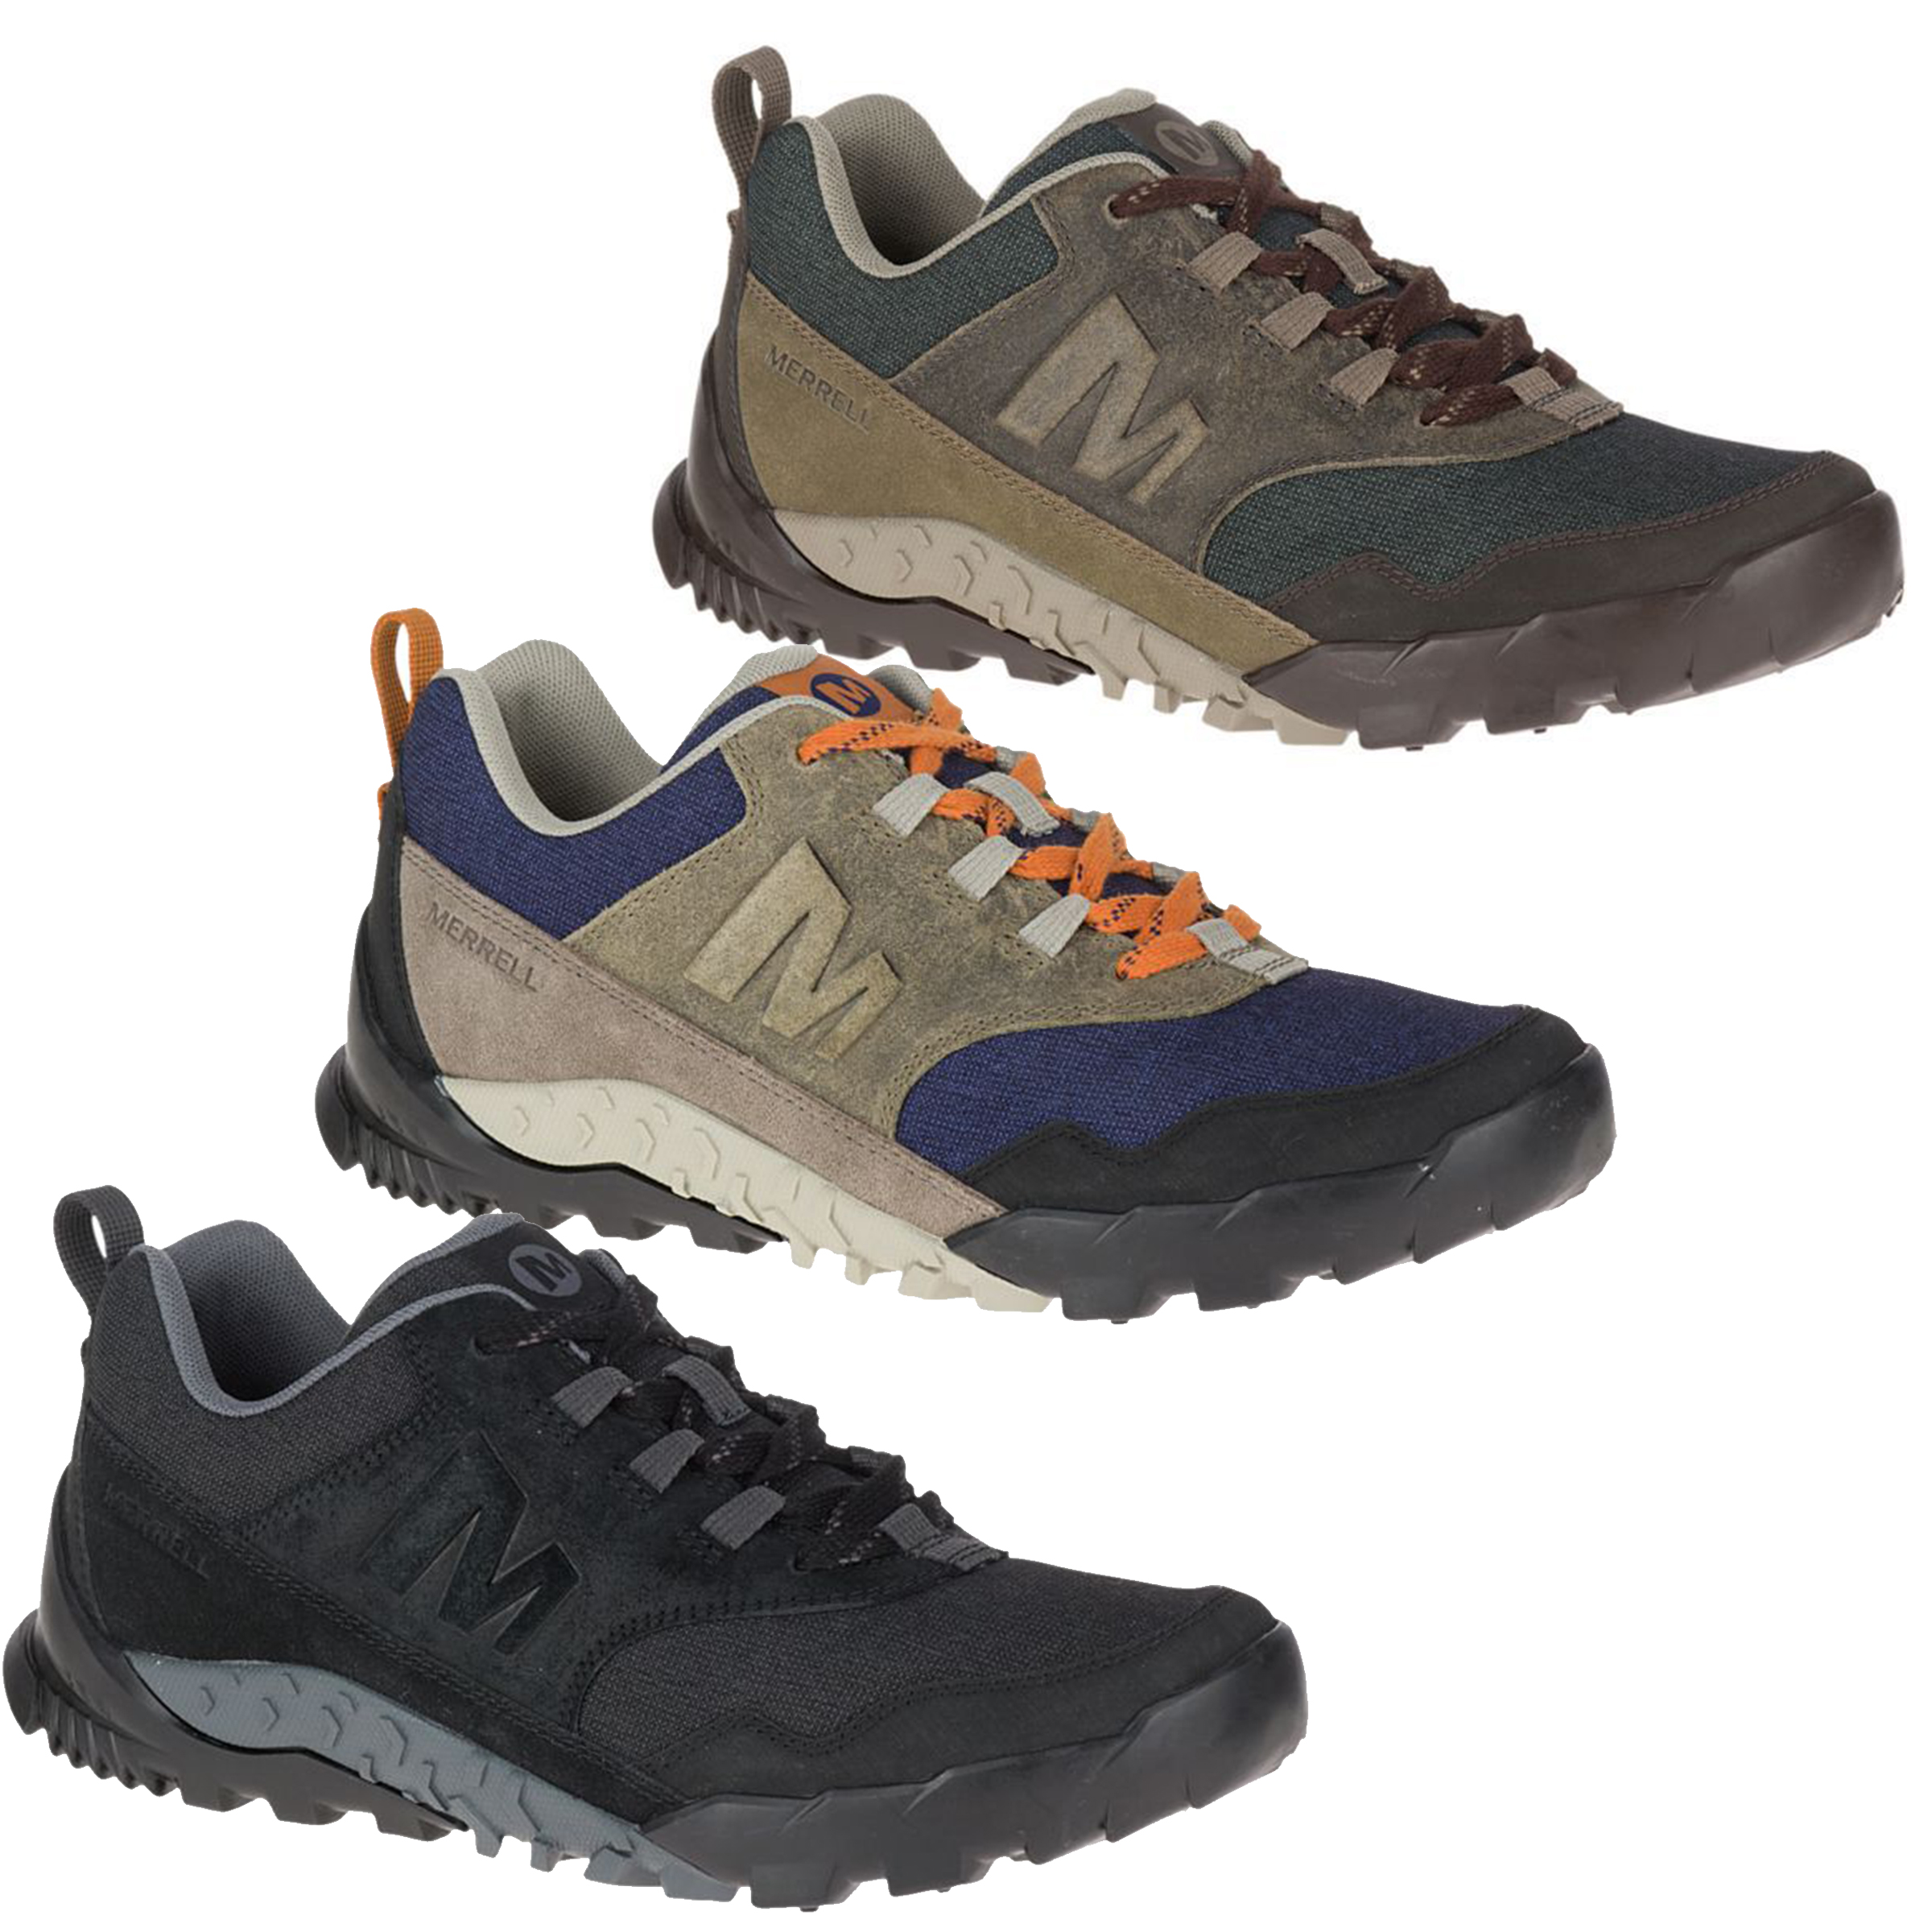 916dab6116 Details about Mens Merrell Annex Recruit Vibram Lace Up Casual Walking  Trainers Sizes 7 to 14